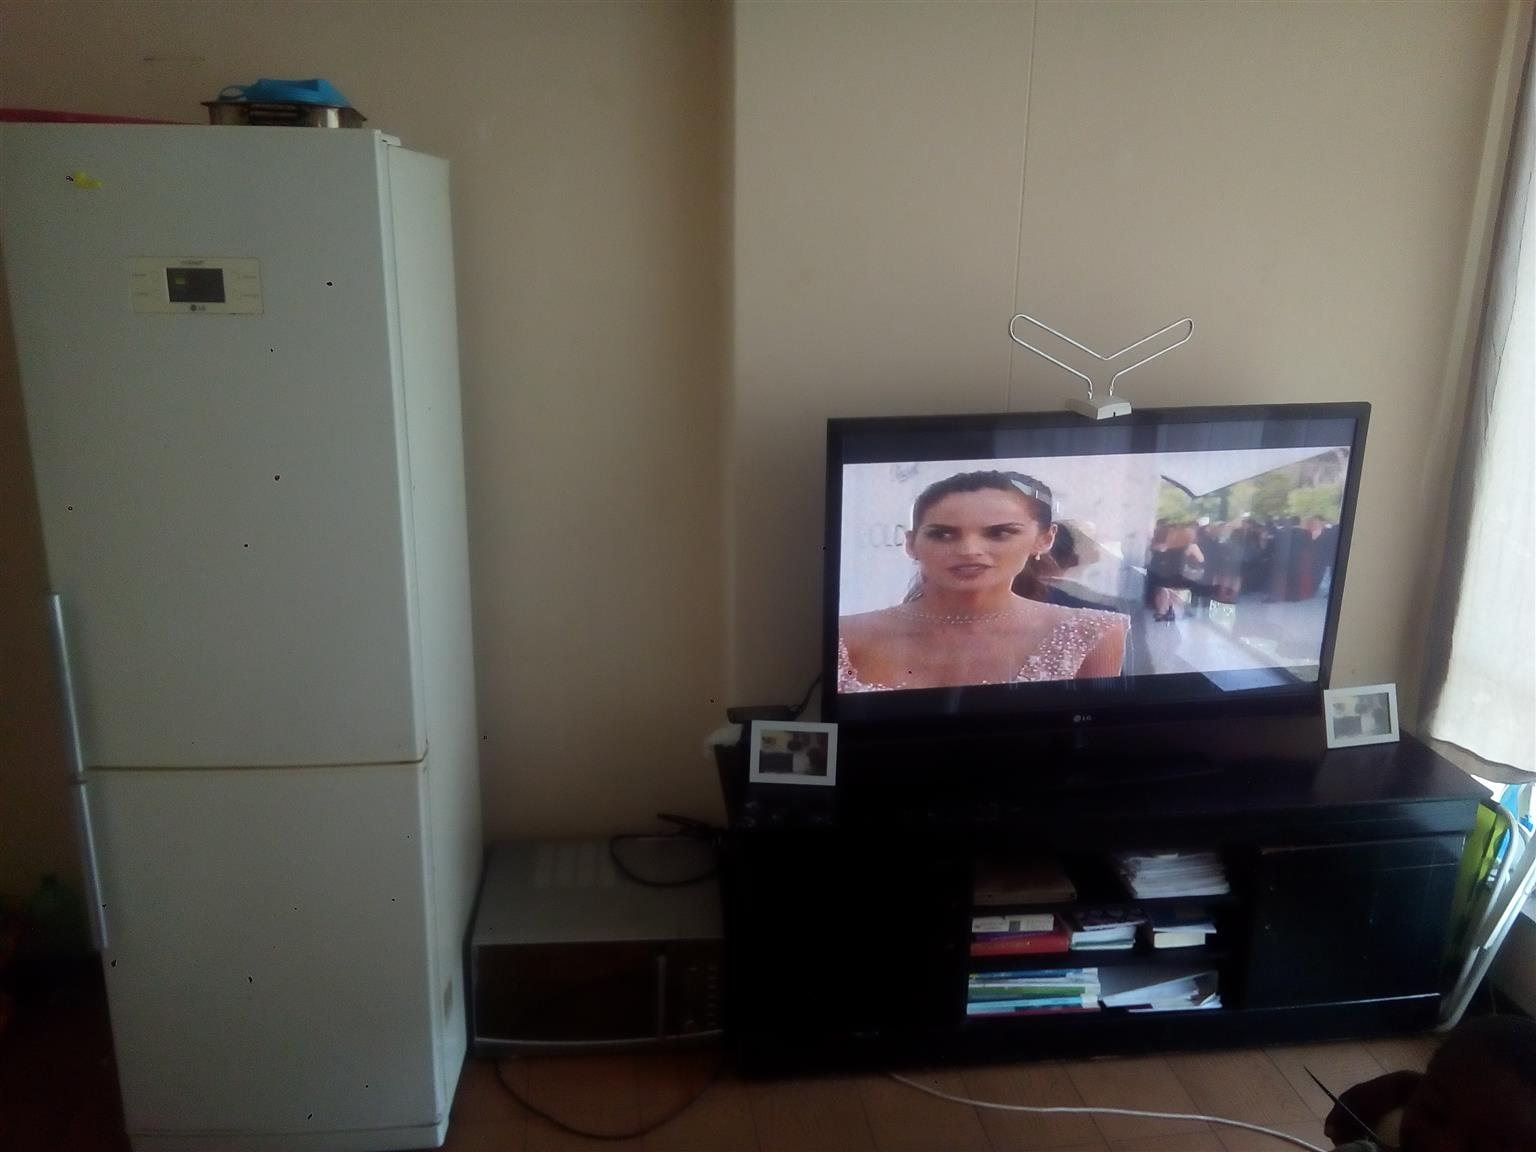 Tv 50 inch LG, Defy microwave, fridge, TV stand and bed